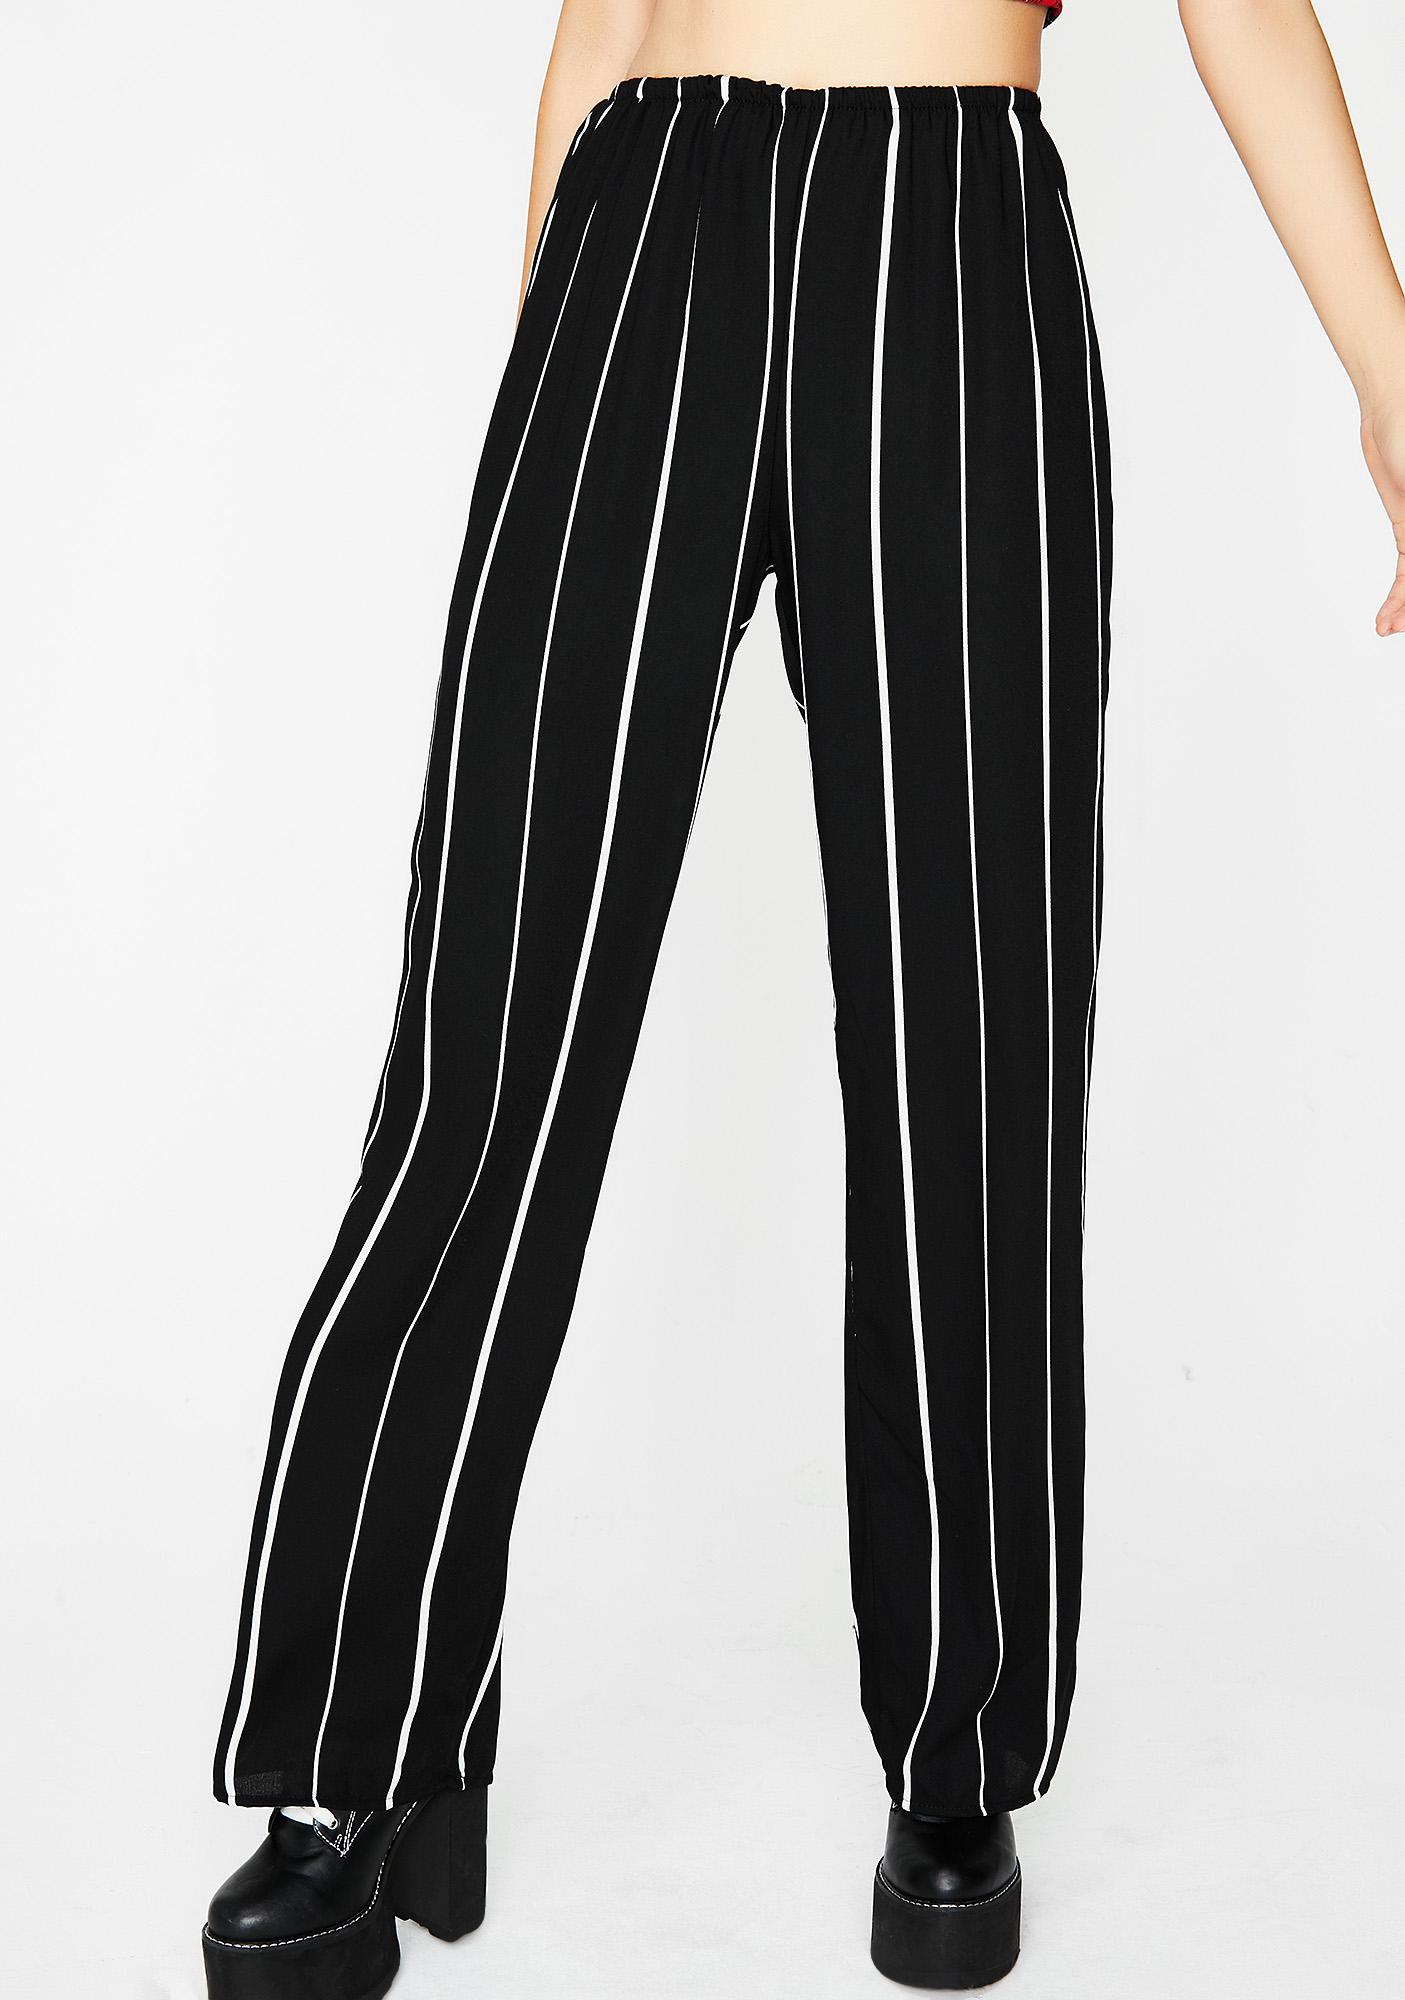 Never Quit Striped Pants